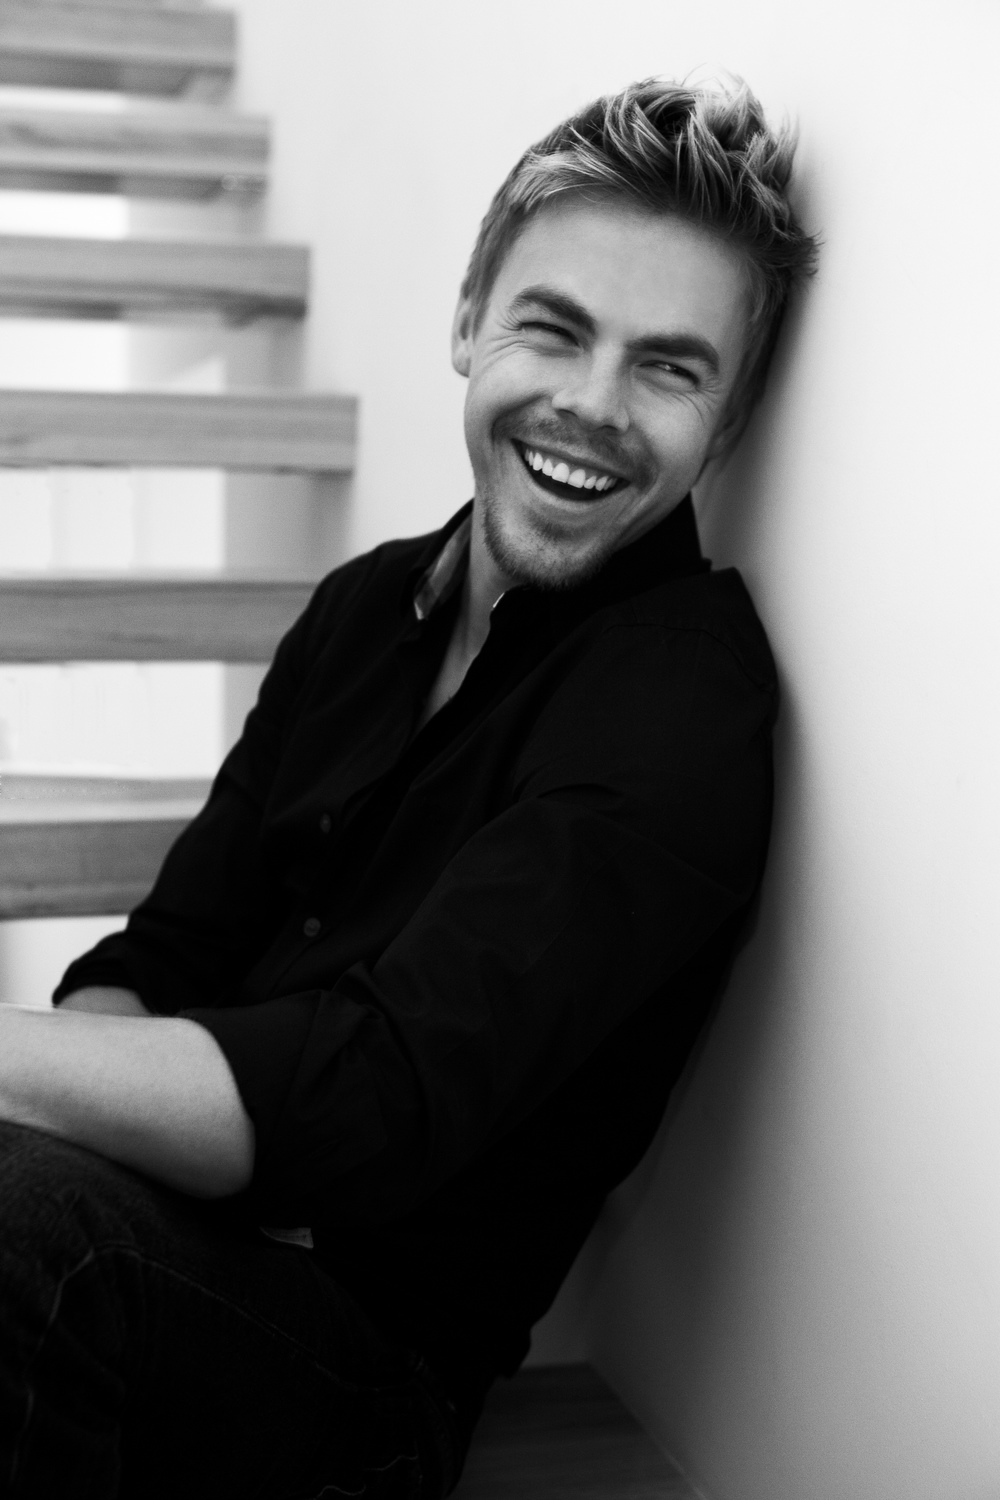 GF_DerekHough009.jpg